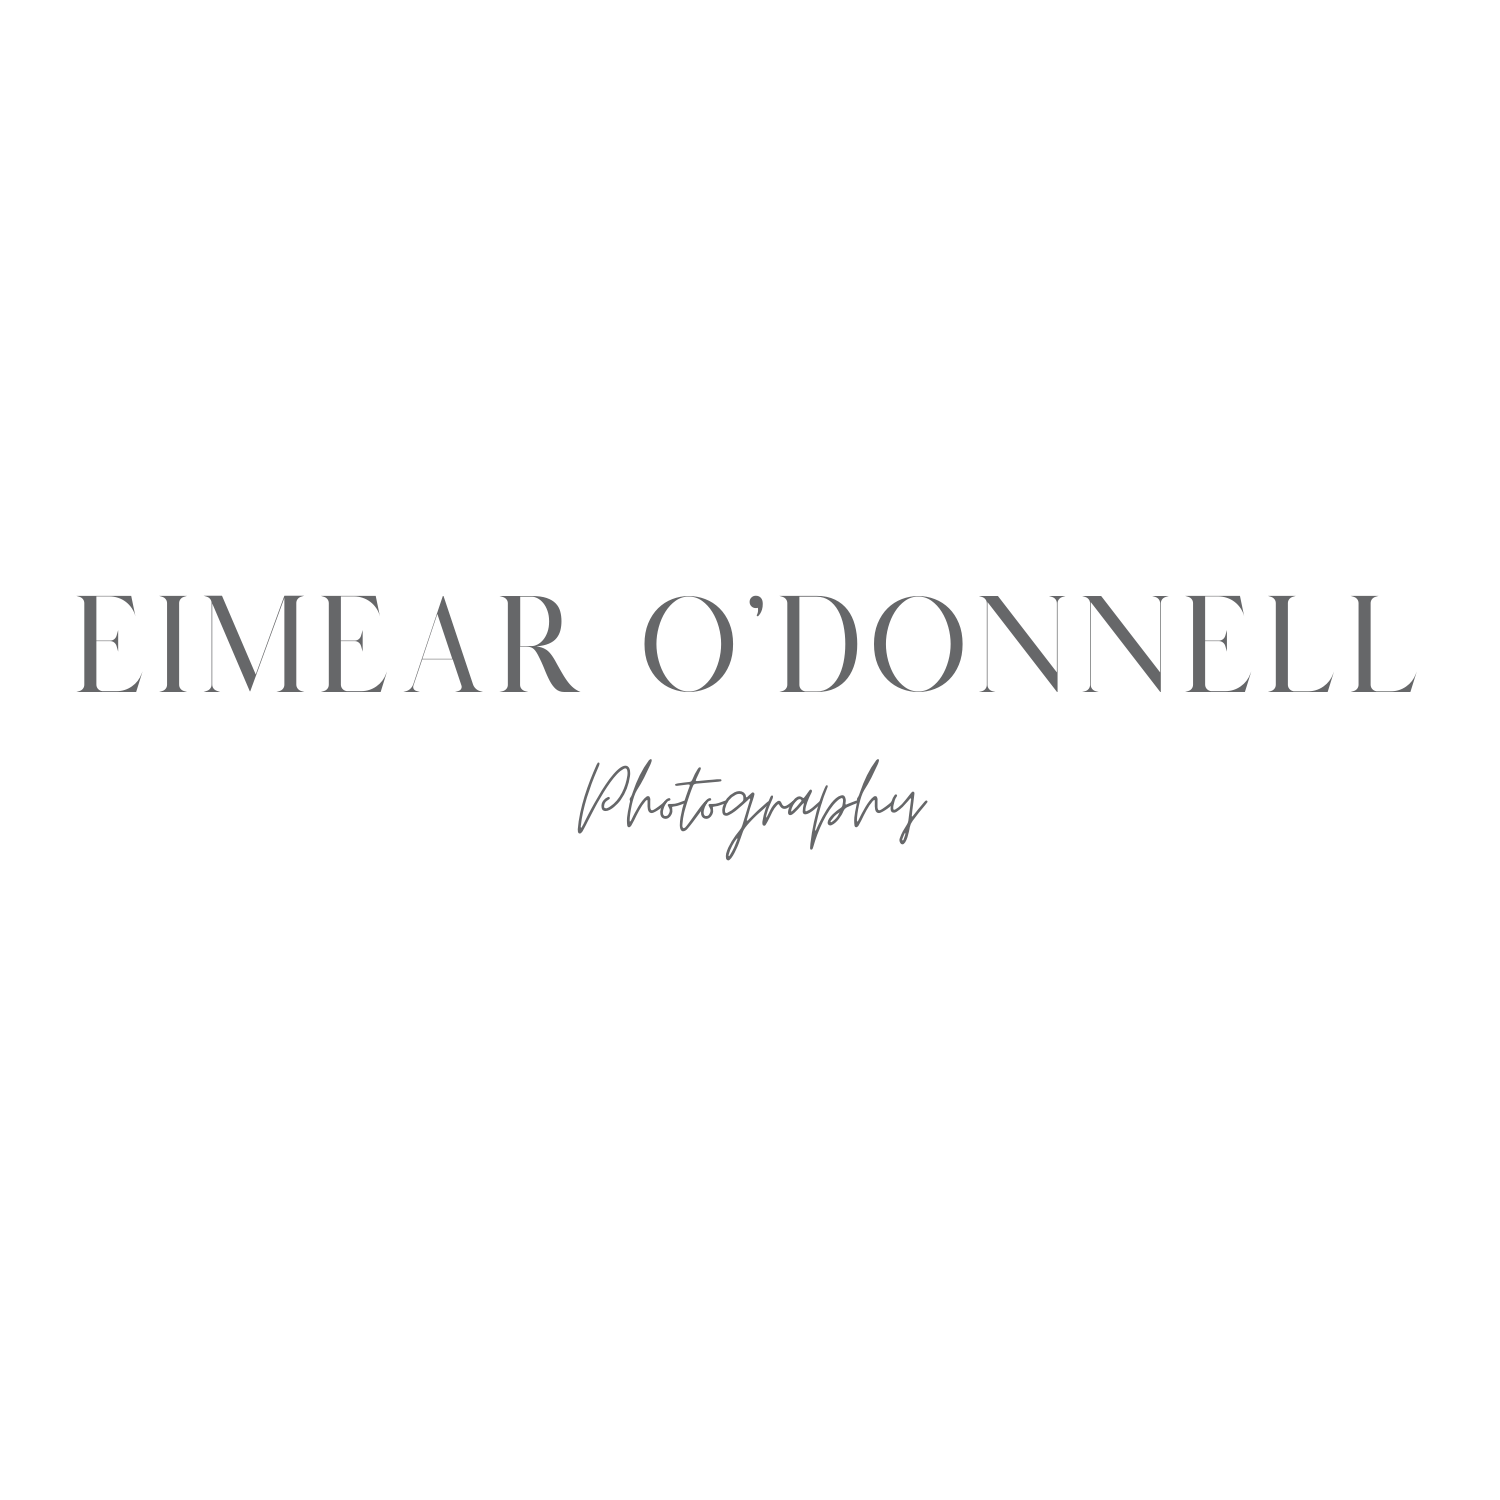 Eimear O'Donnell Photography